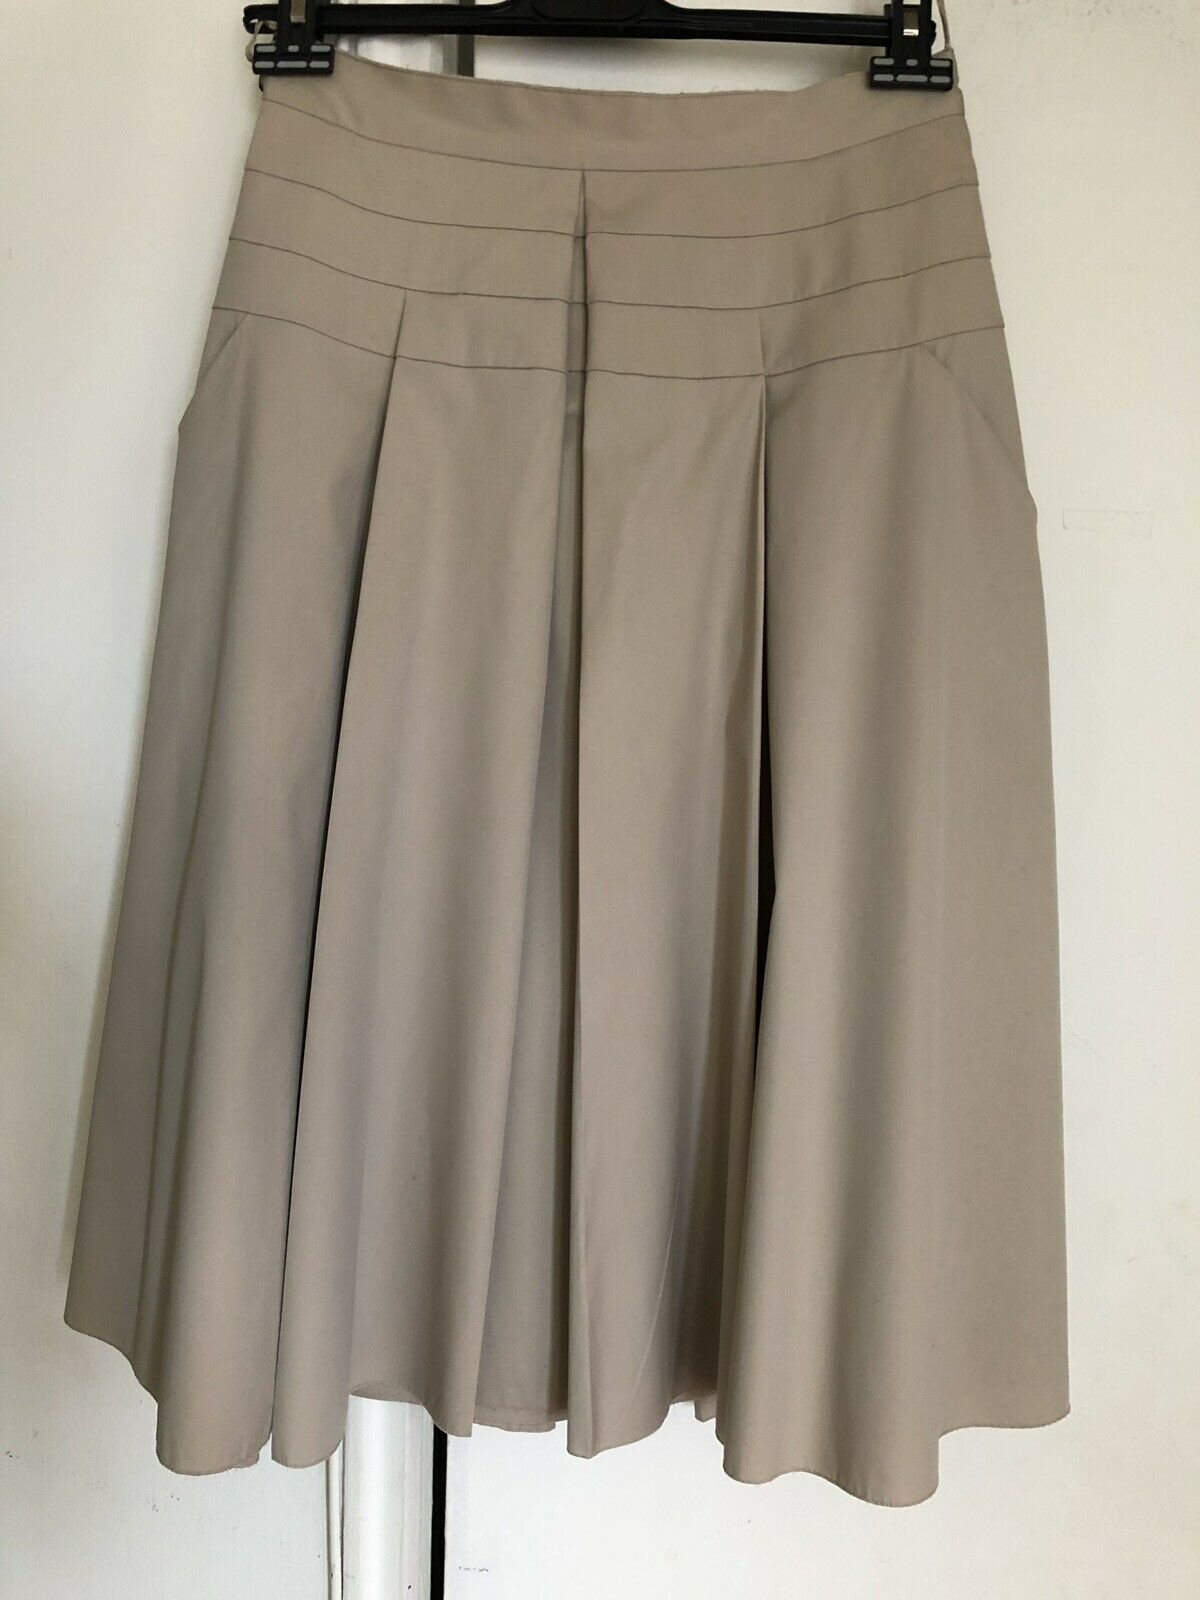 New Prada Ladies Pleated Skirt With Tag,Authentic Size 44 Beige.Made In .